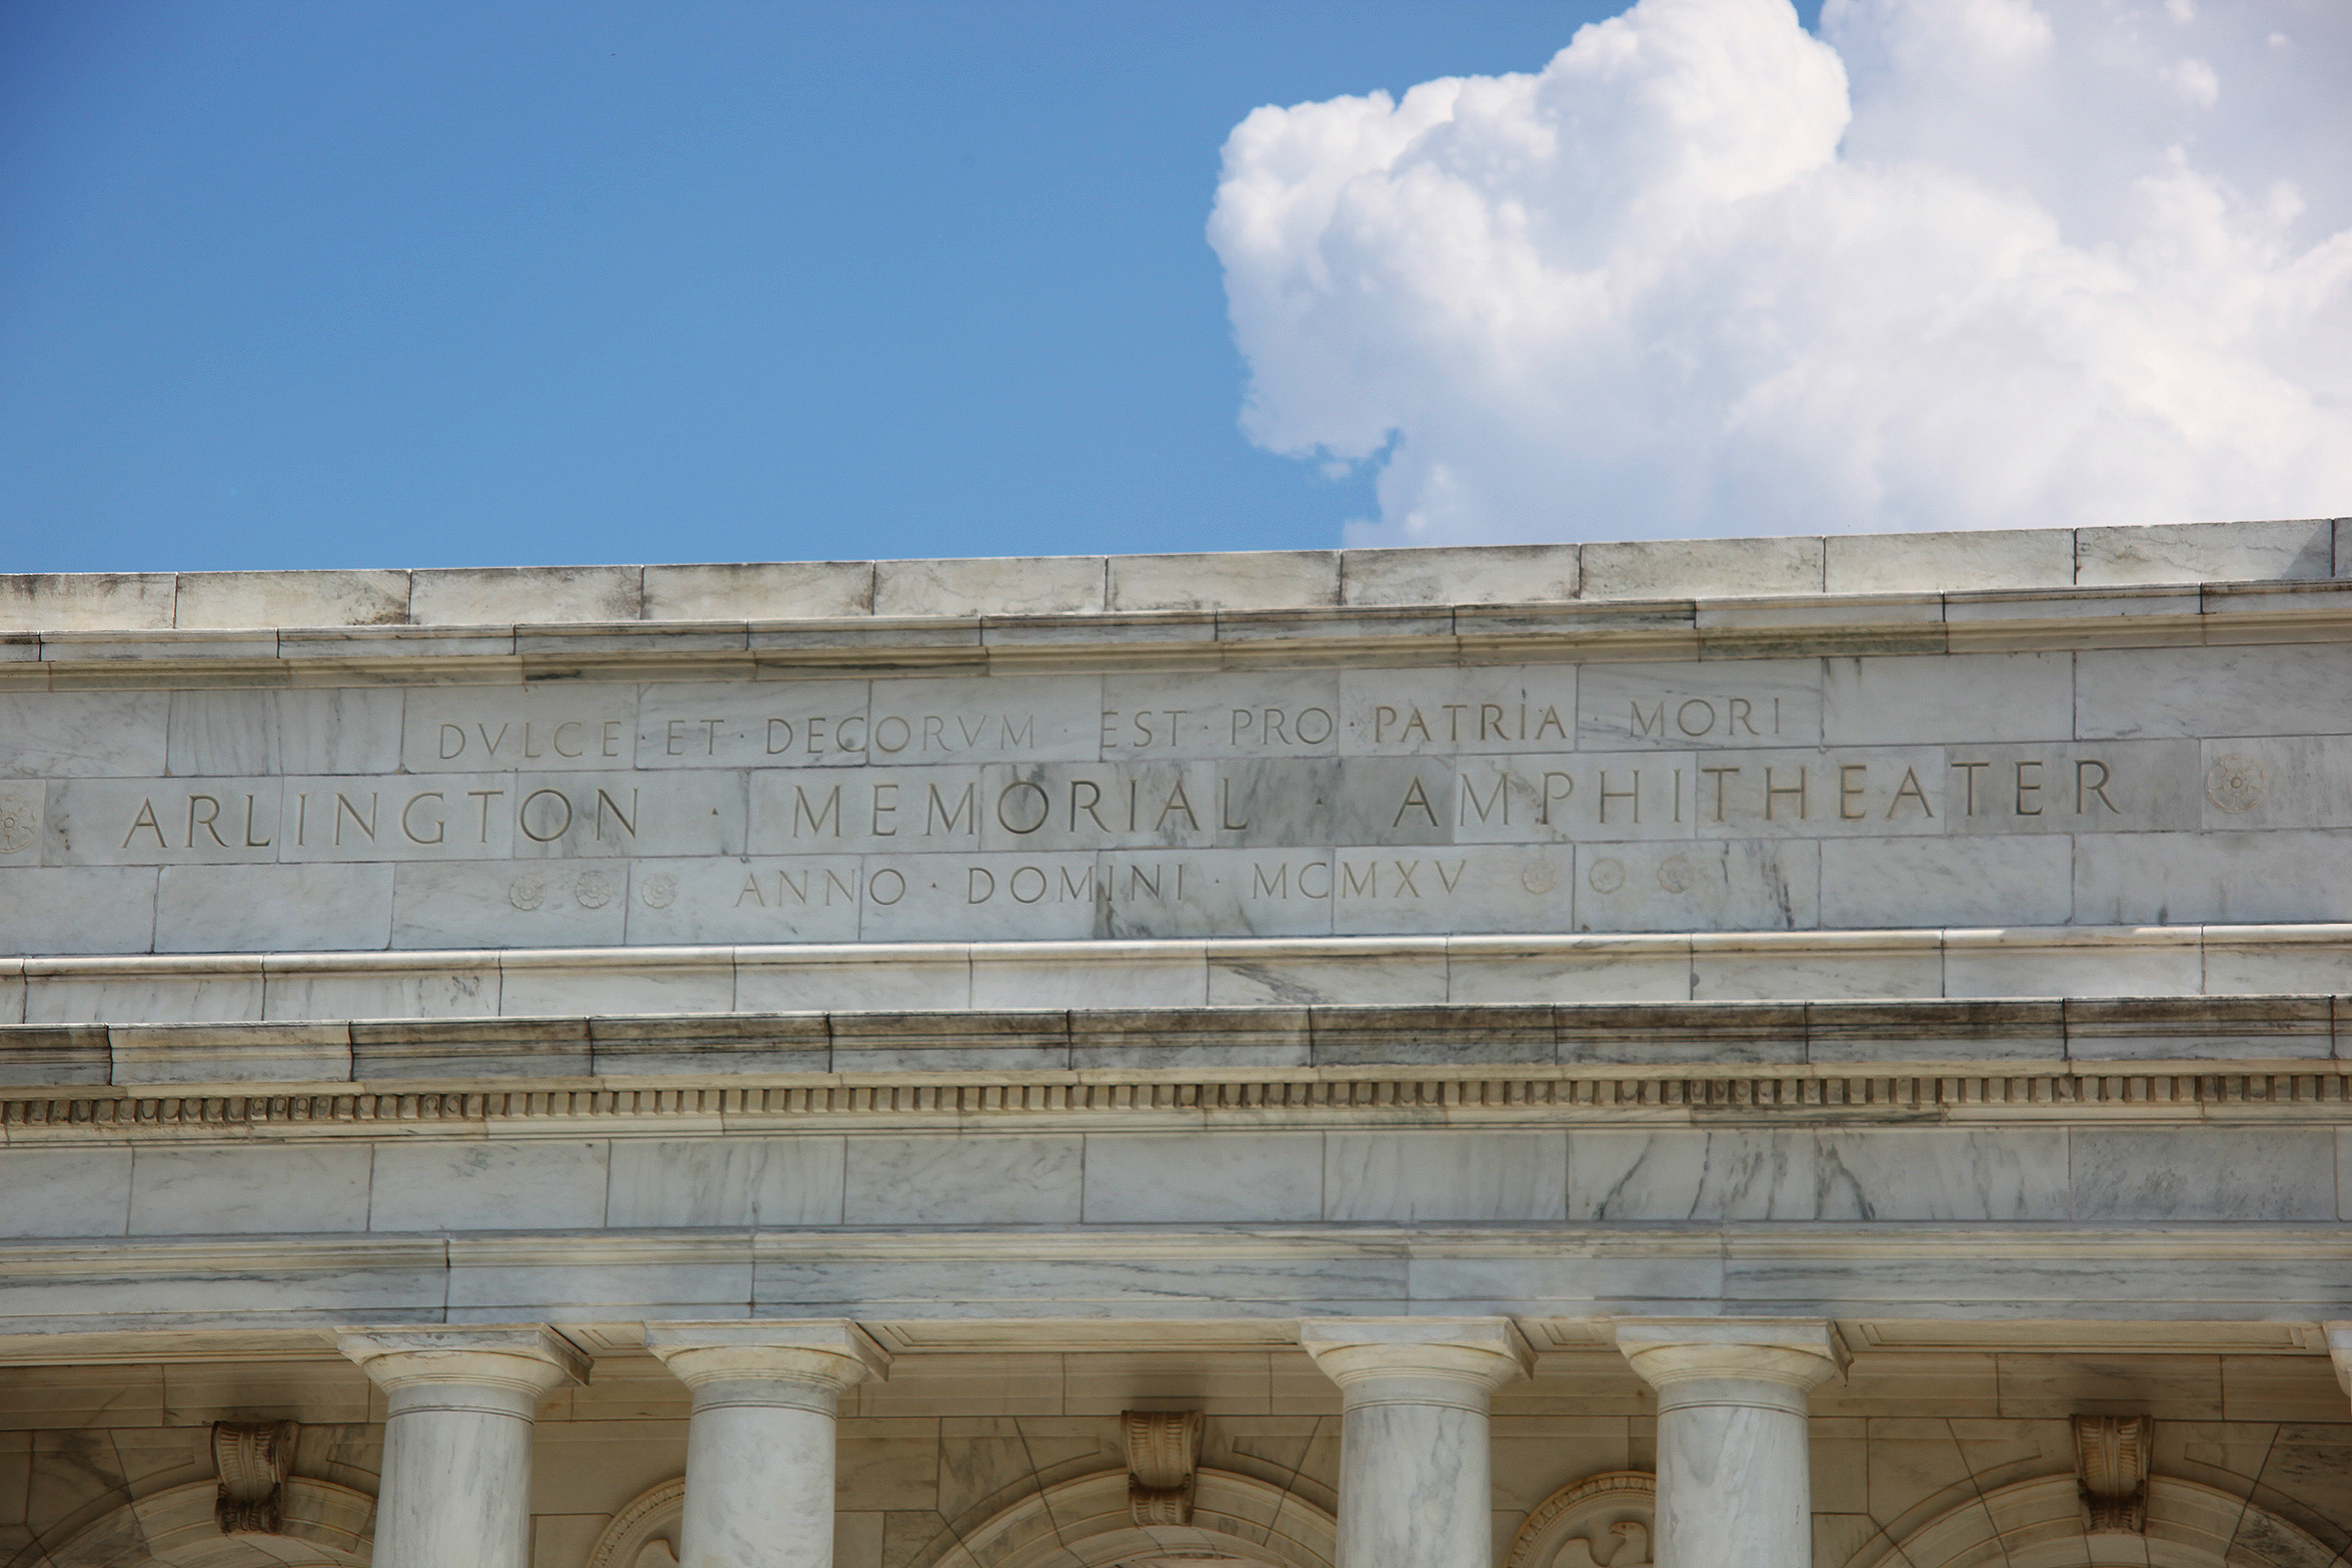 https://upload.wikimedia.org/wikipedia/commons/b/be/Memorial_Amphitheater_-_rear_pediment_-_Arlington_National_Cemetery_-_2011.JPG